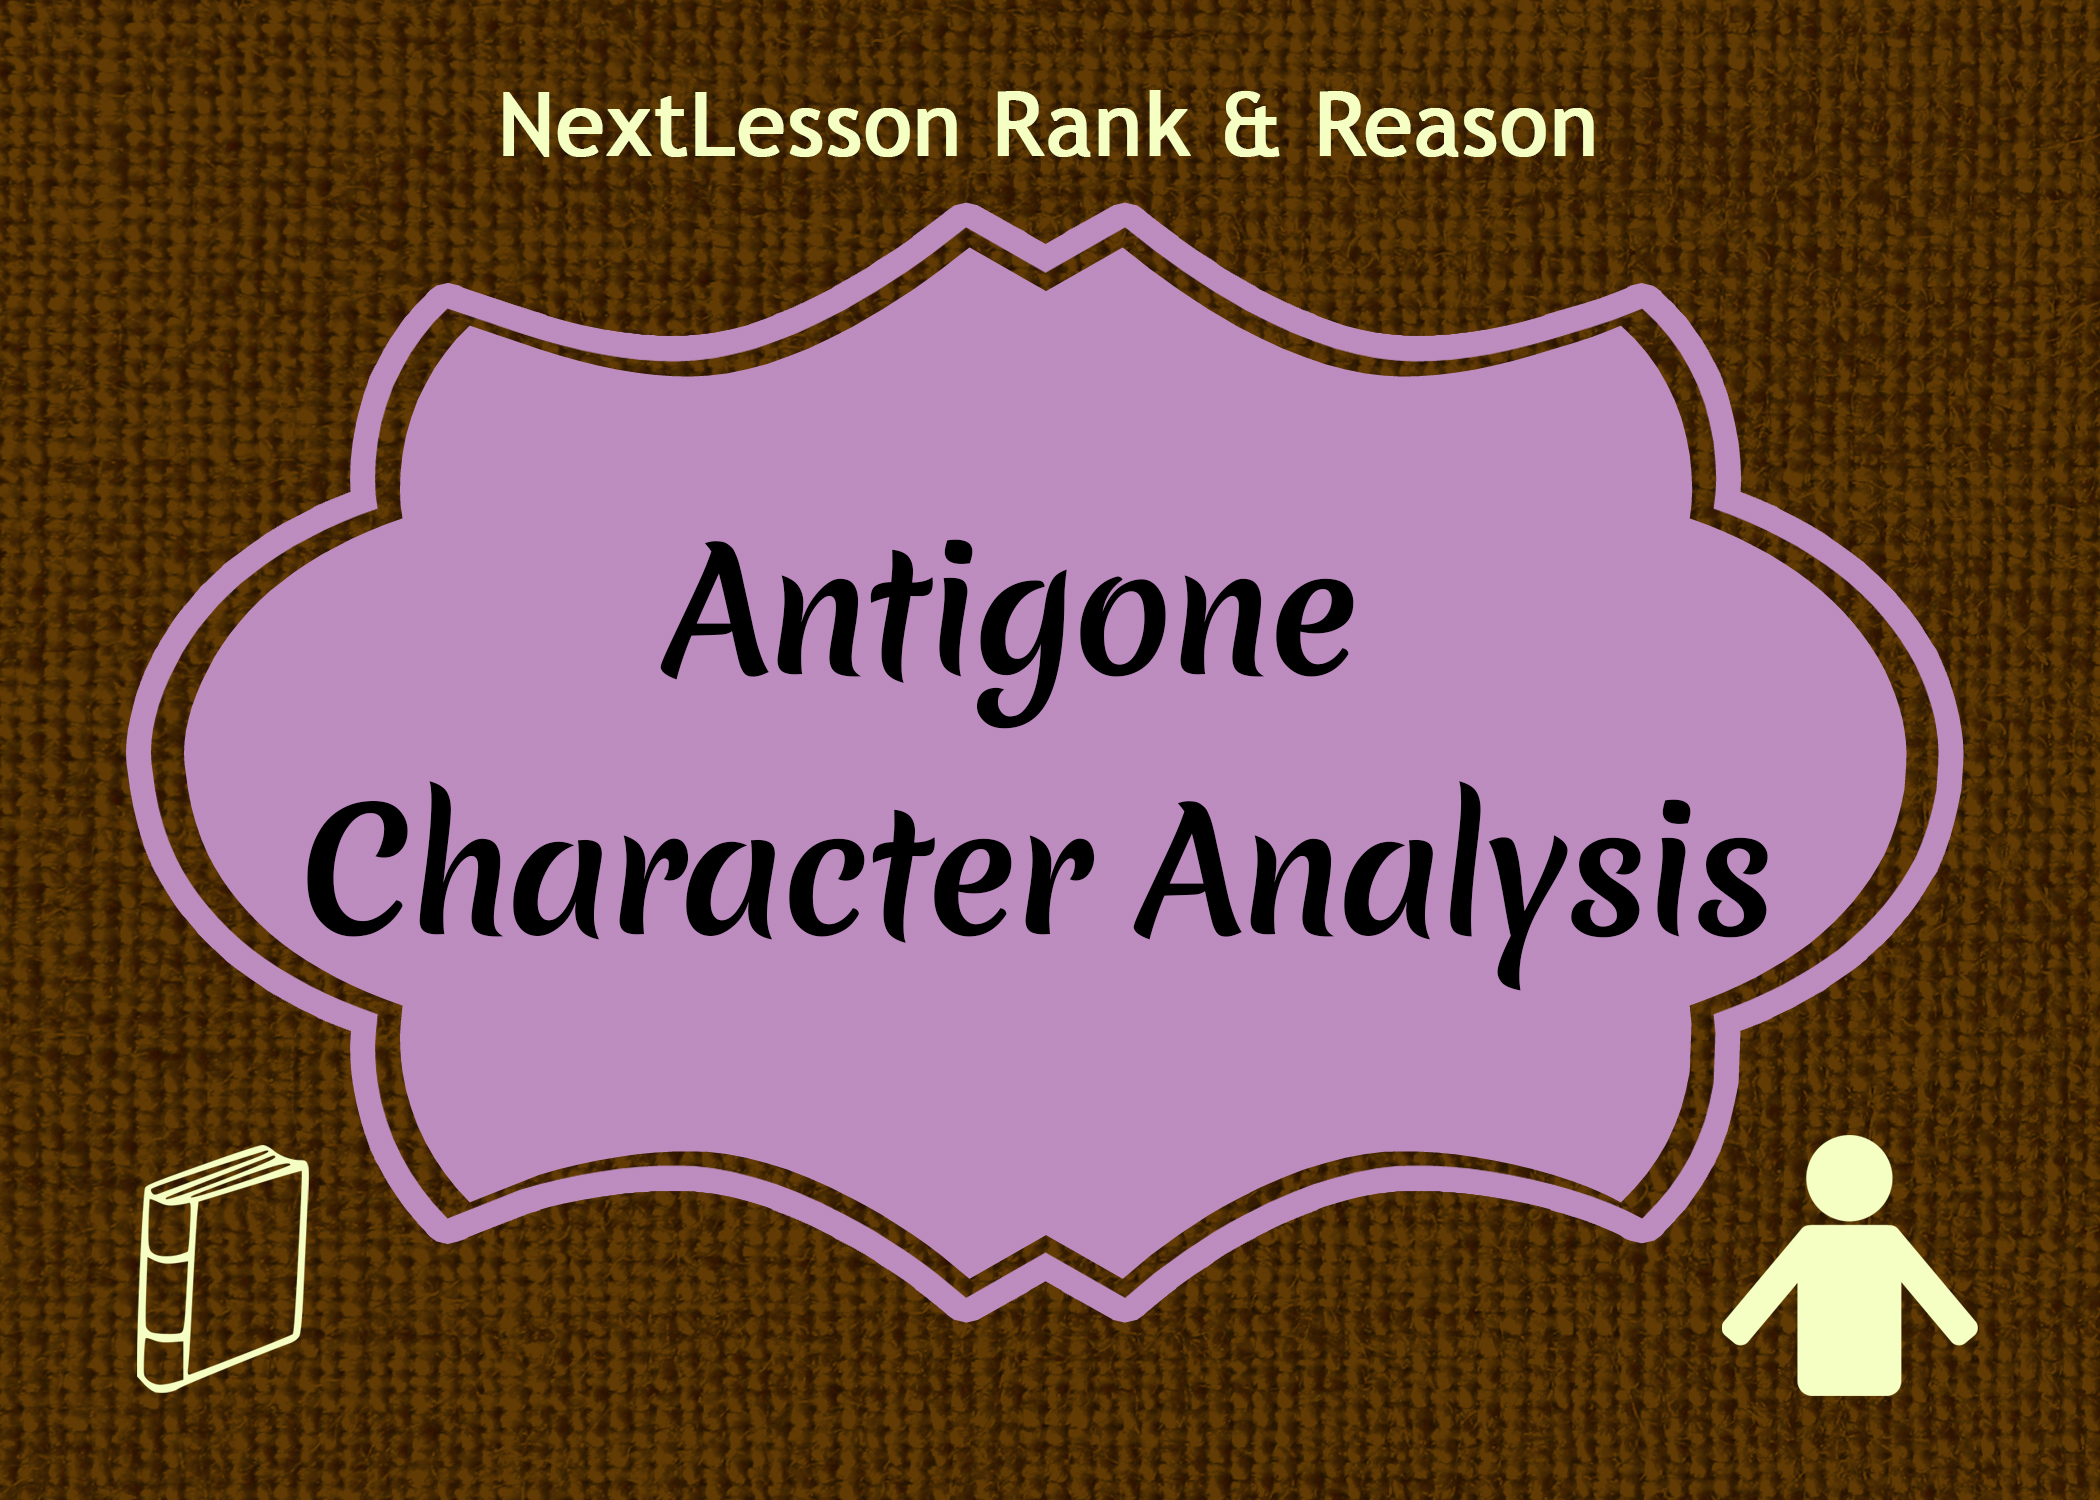 a character analysis of creon and antigone from the play antigone by sophocles Antigone is a tragedy by sophocles written in or before 441 bc of the three theban plays  creon decides to spare ismene and to bury antigone alive in a cave  time, antigone remains focused on the characters and themes within the play  antigone, who performed the first burial, citing both the guard's description of.